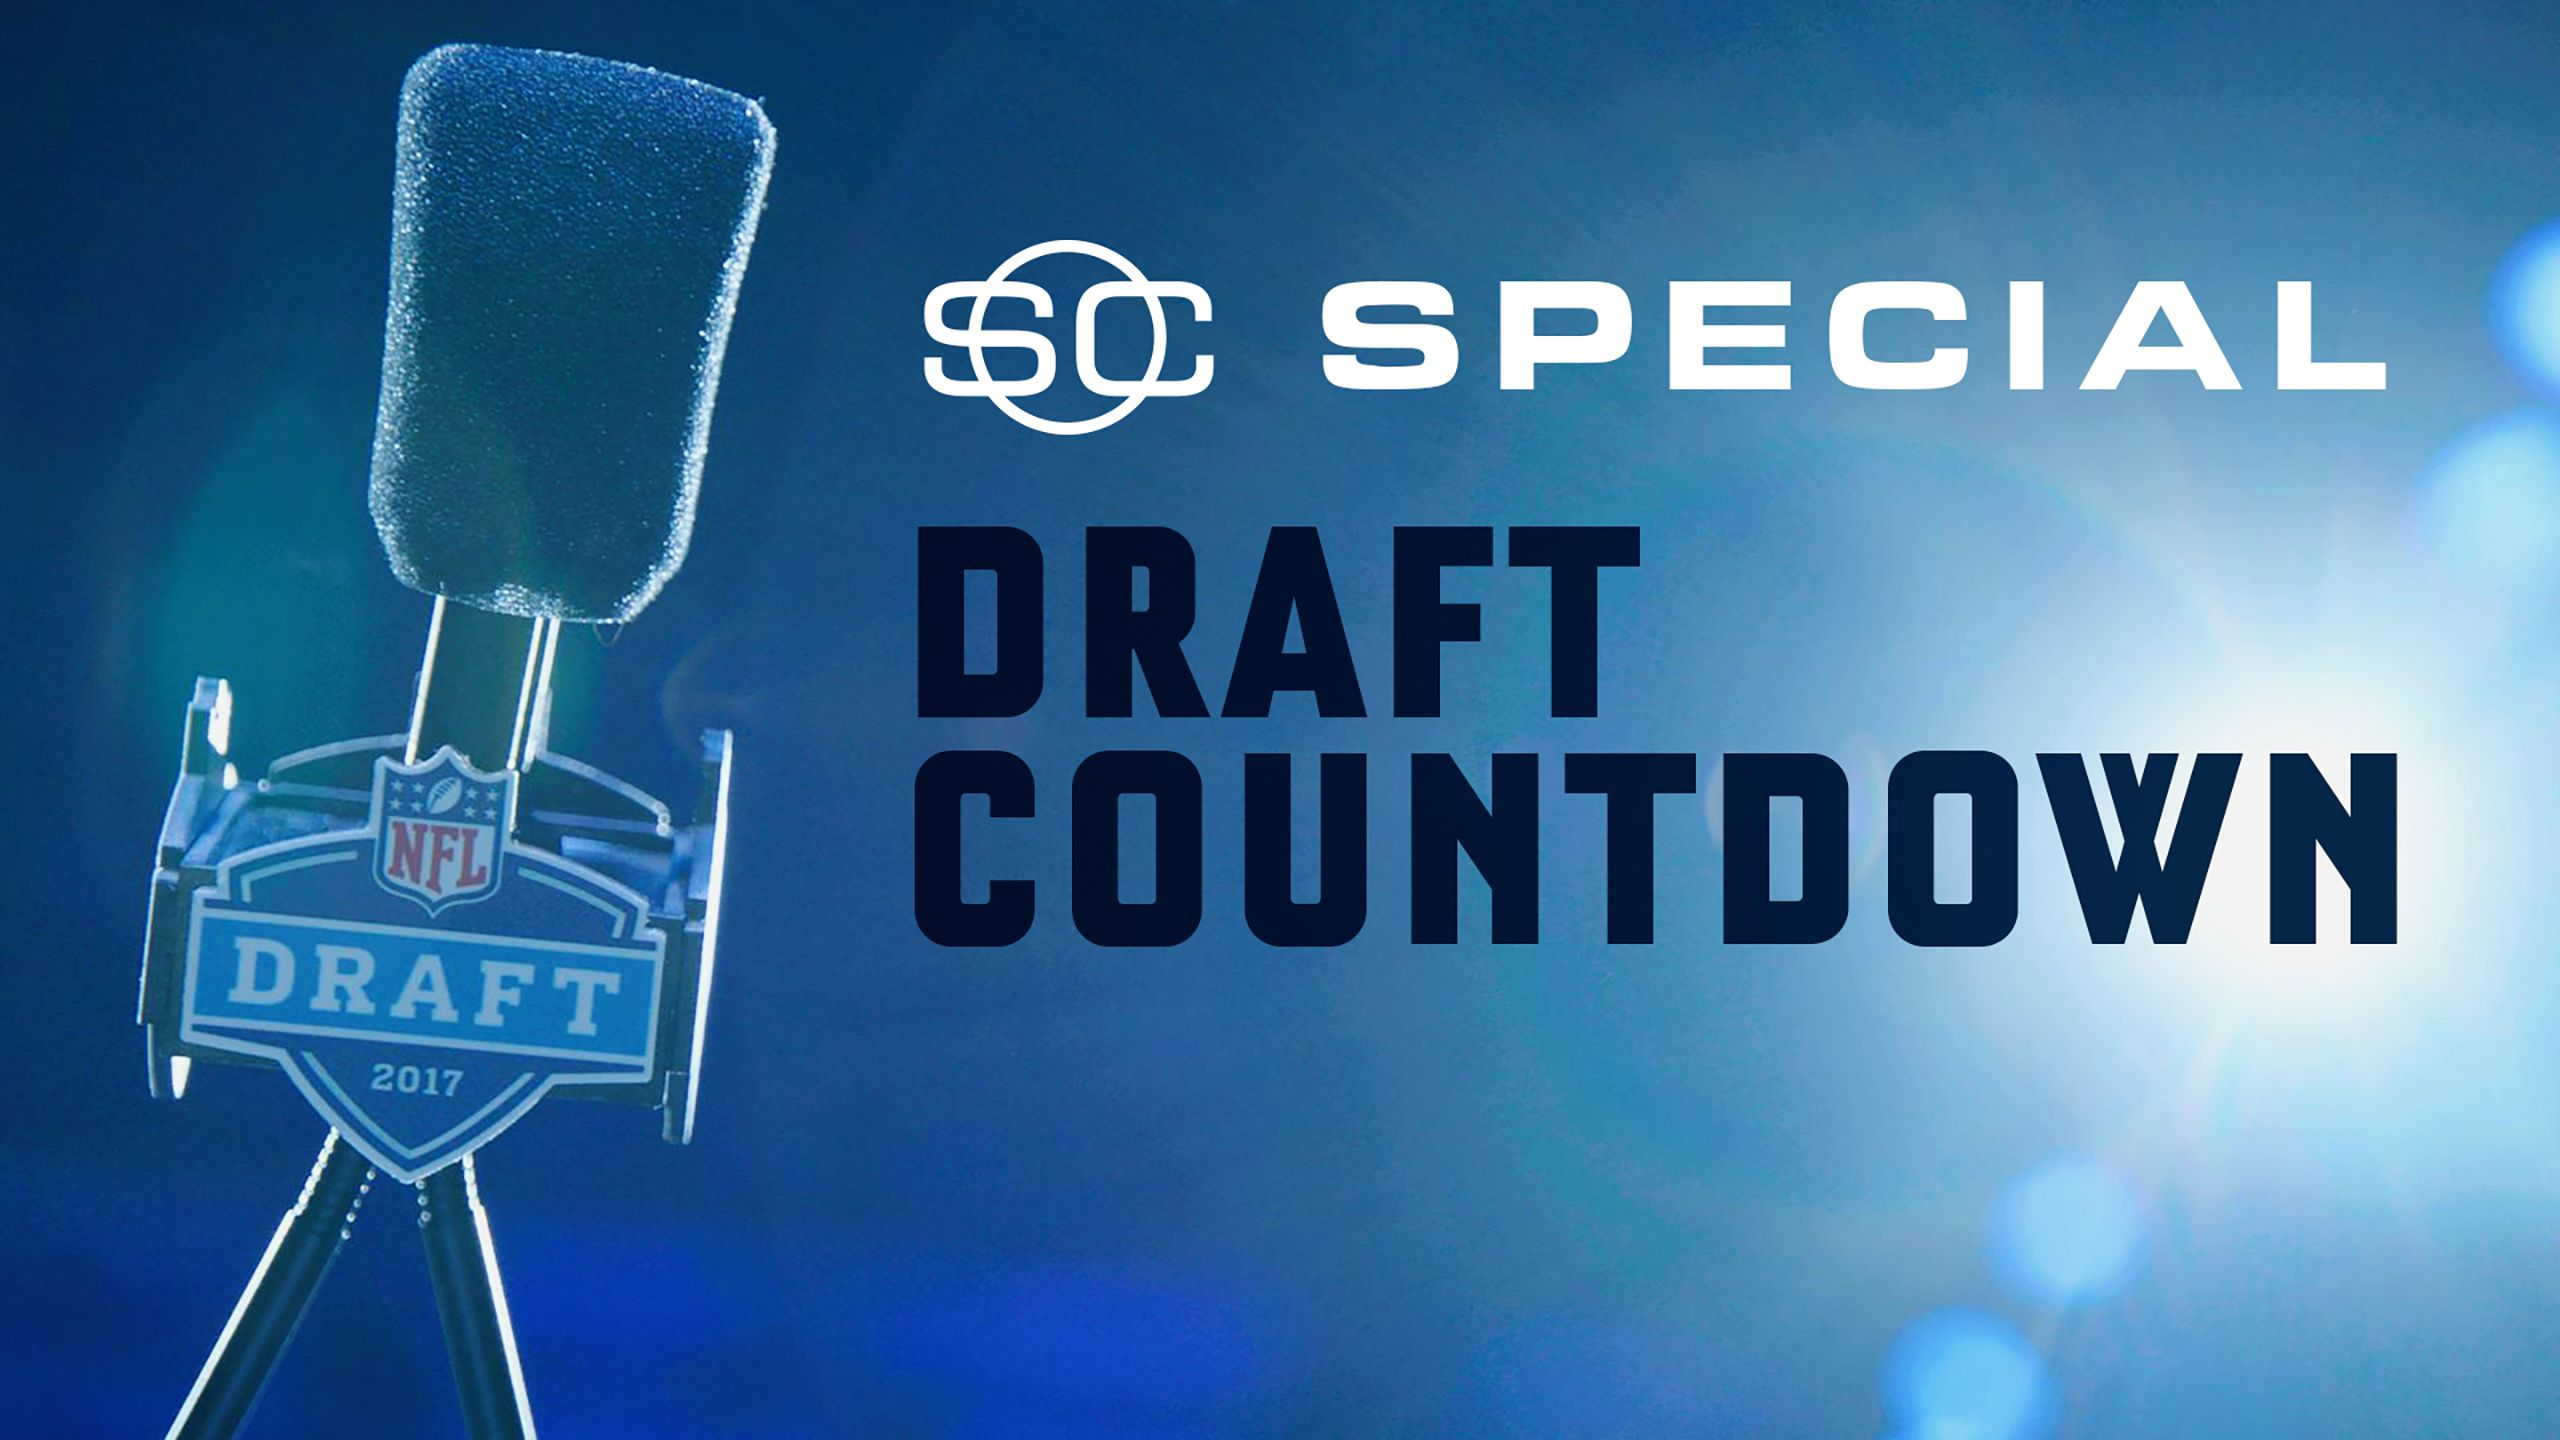 SportsCenter Special presented by Zip Recruiter: Draft Countdown